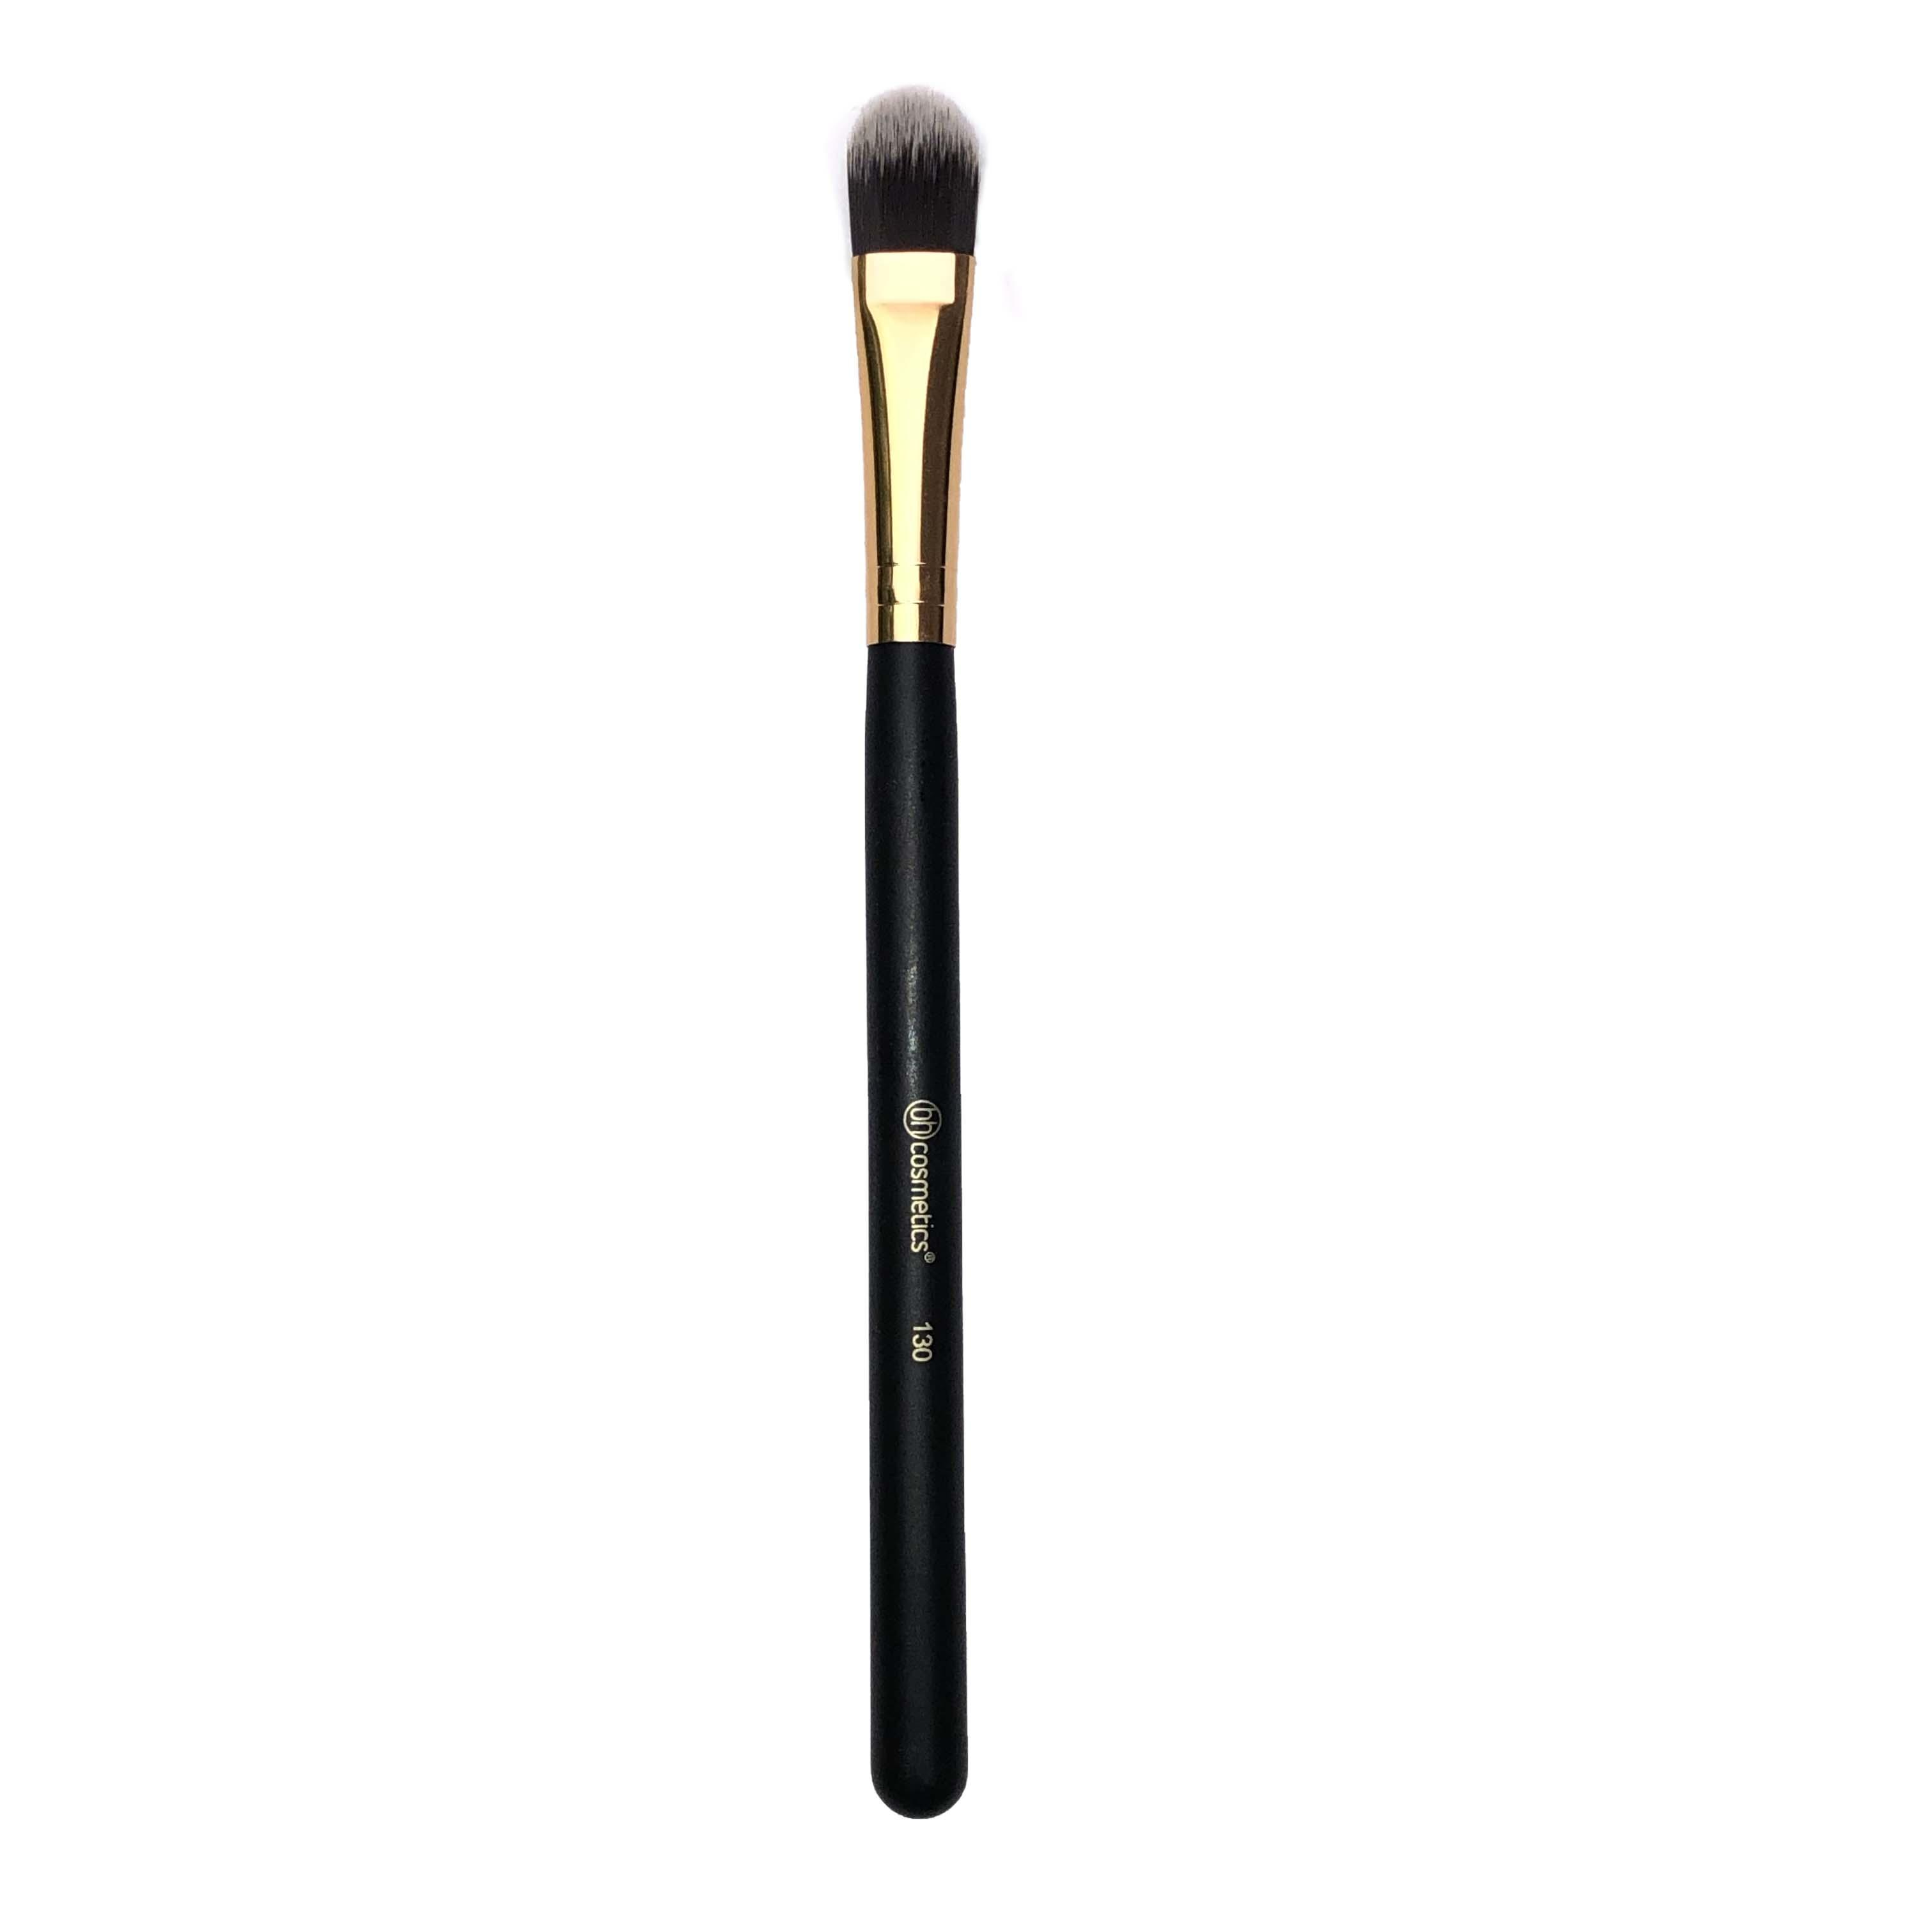 BH Cosmetics Full Shader Eye Brush